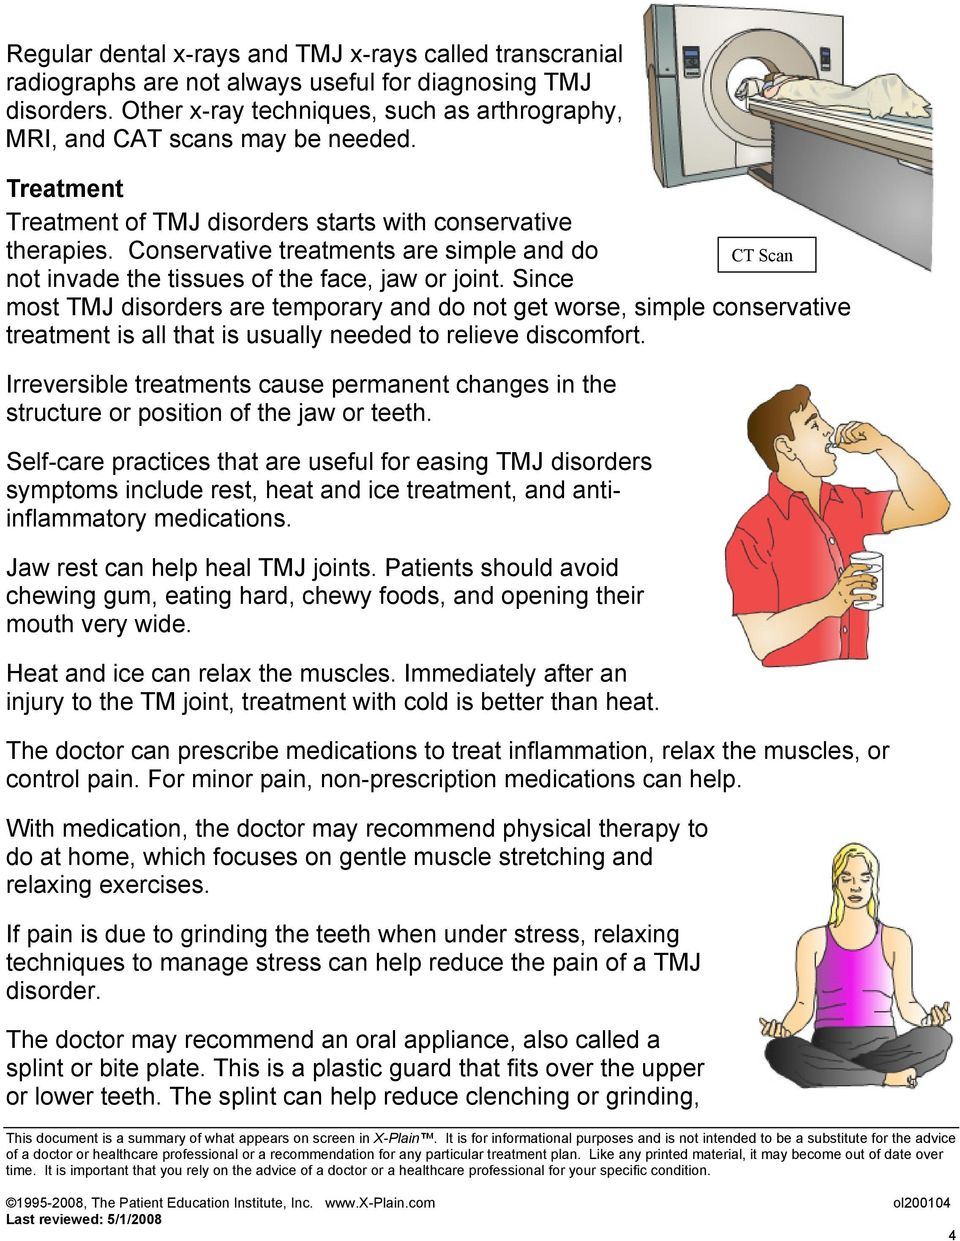 Since most TMJ disorders are temporary and do not get worse, simple conservative treatment is all that is usually needed to relieve discomfort.